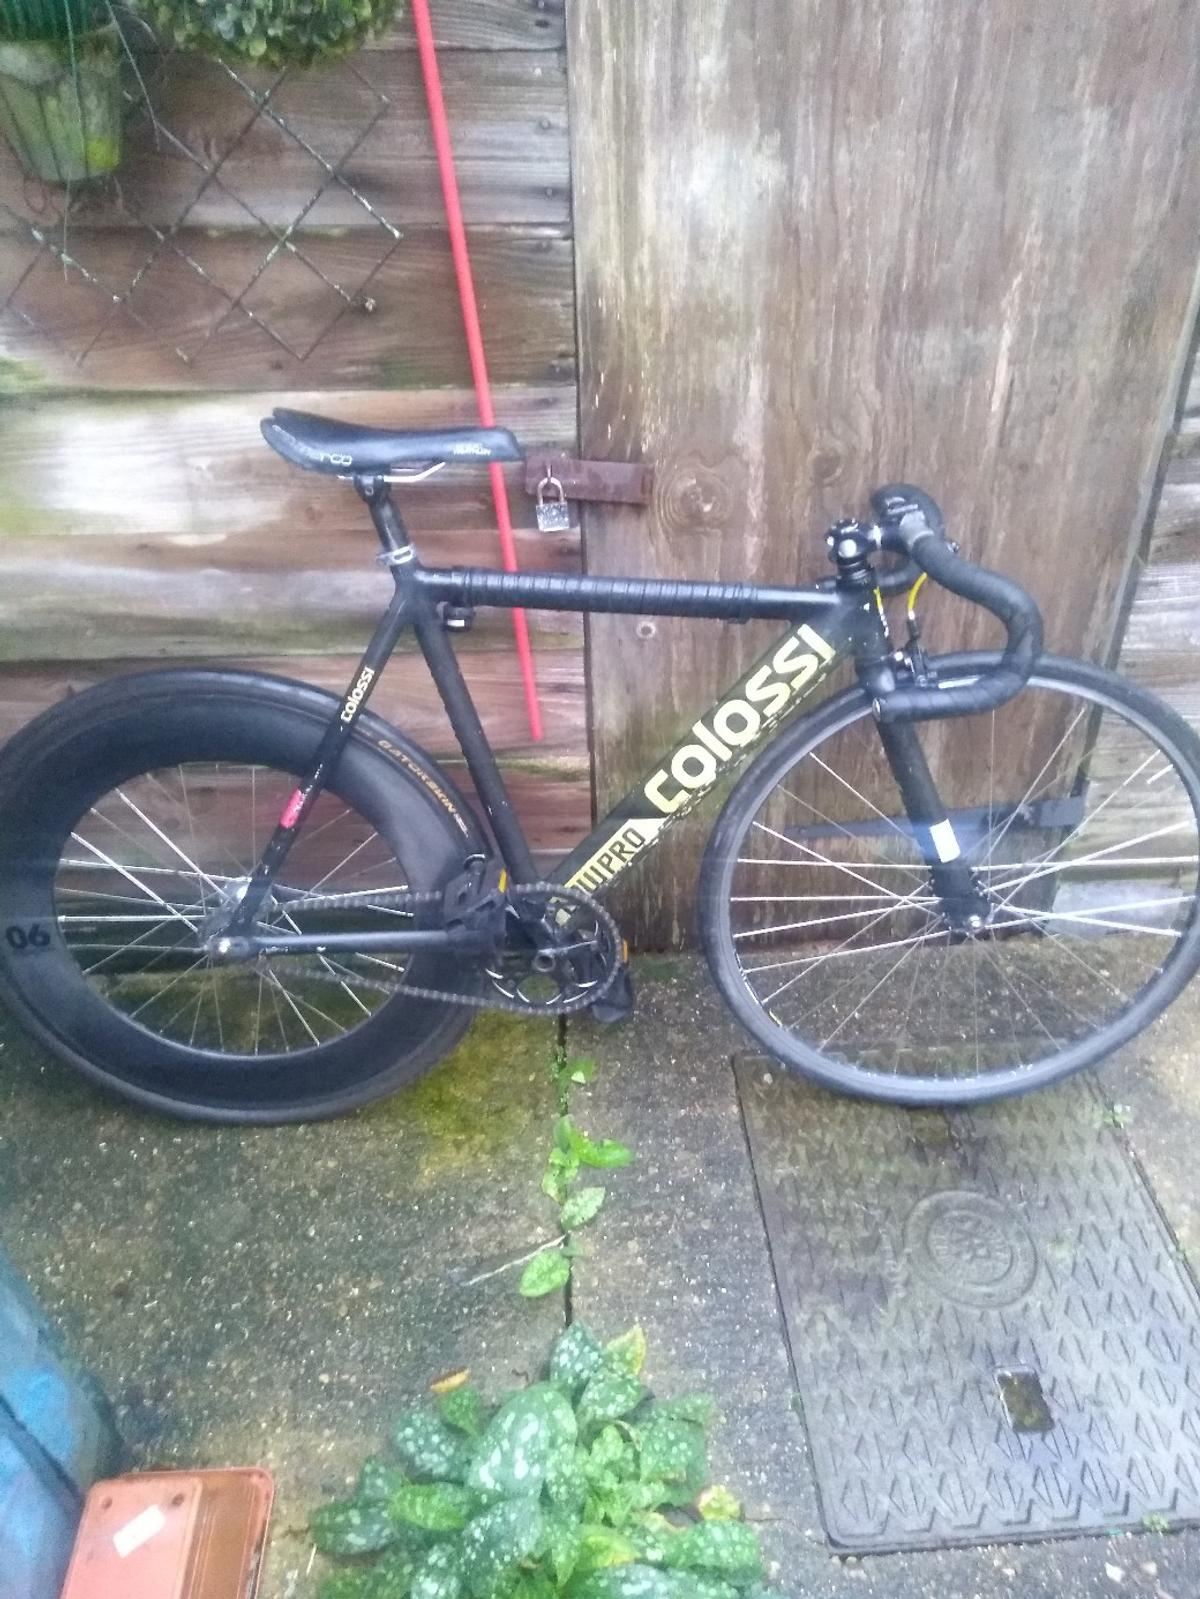 lowpro colossi bike great bike very light and fast ,body paint in places has a few marks but running fine open to offers and swaps.